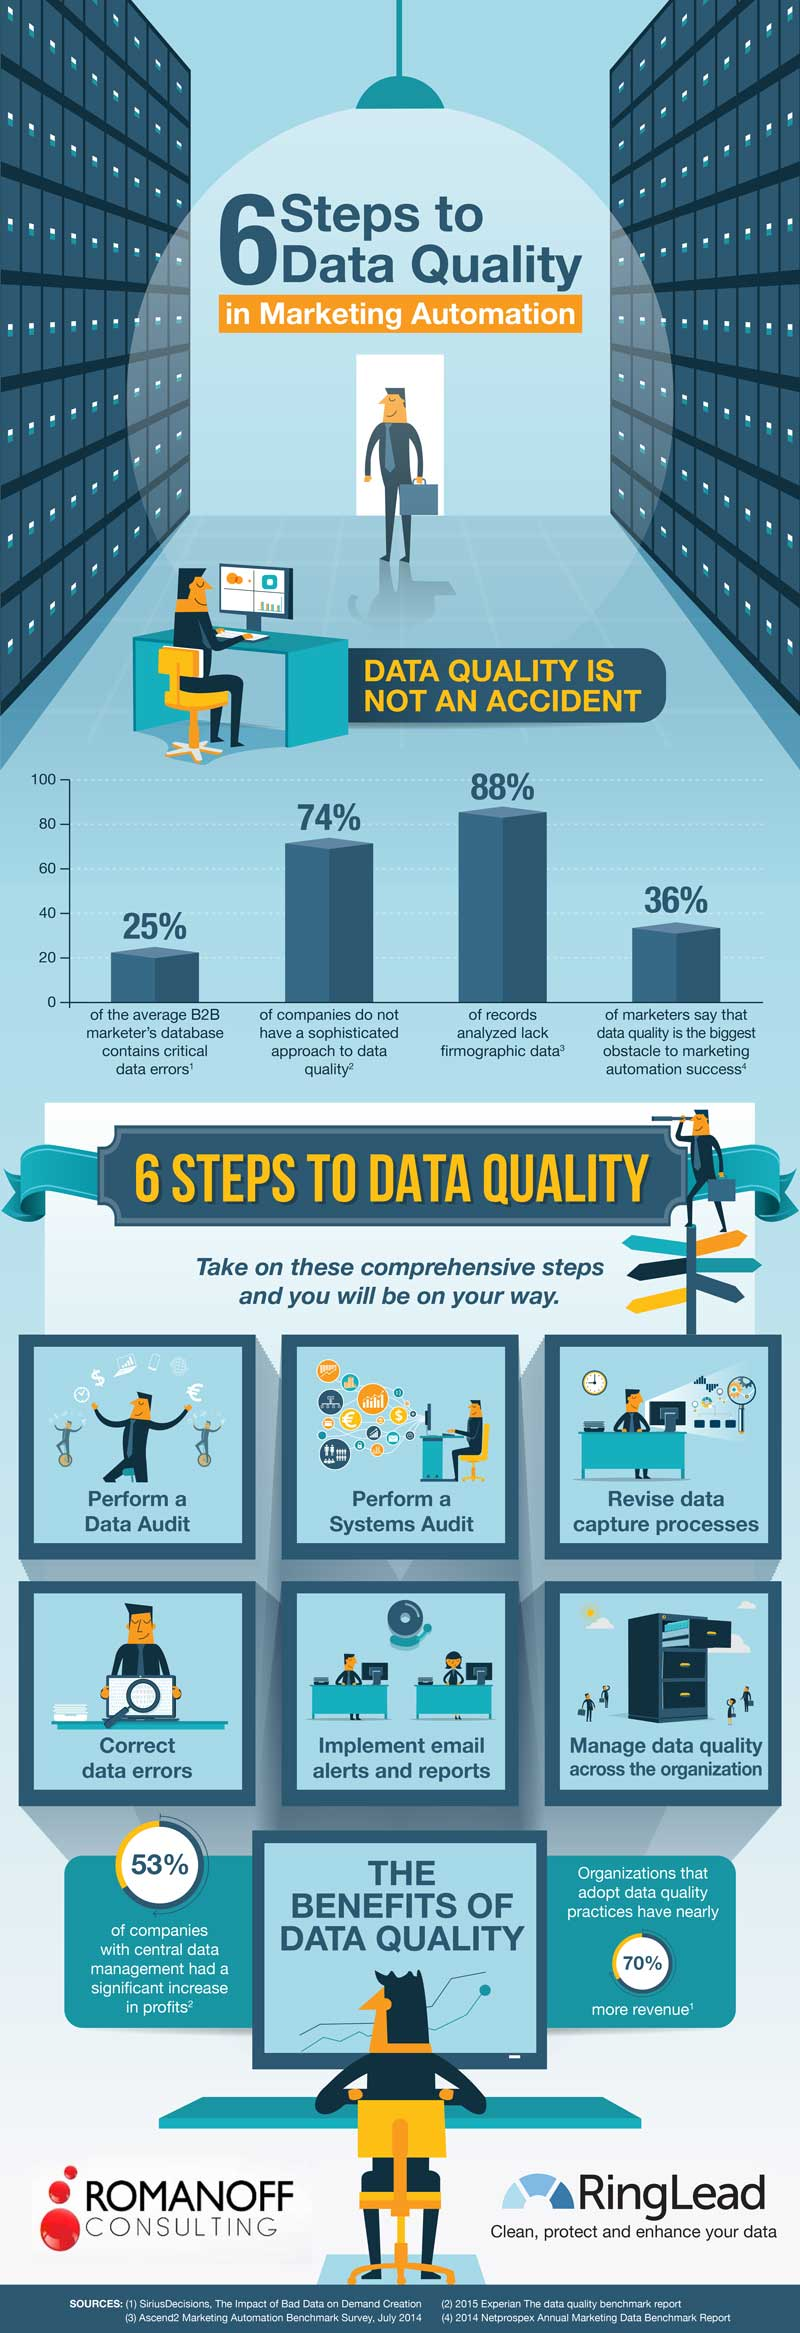 6 Steps to Data Quality in Marketing Automation